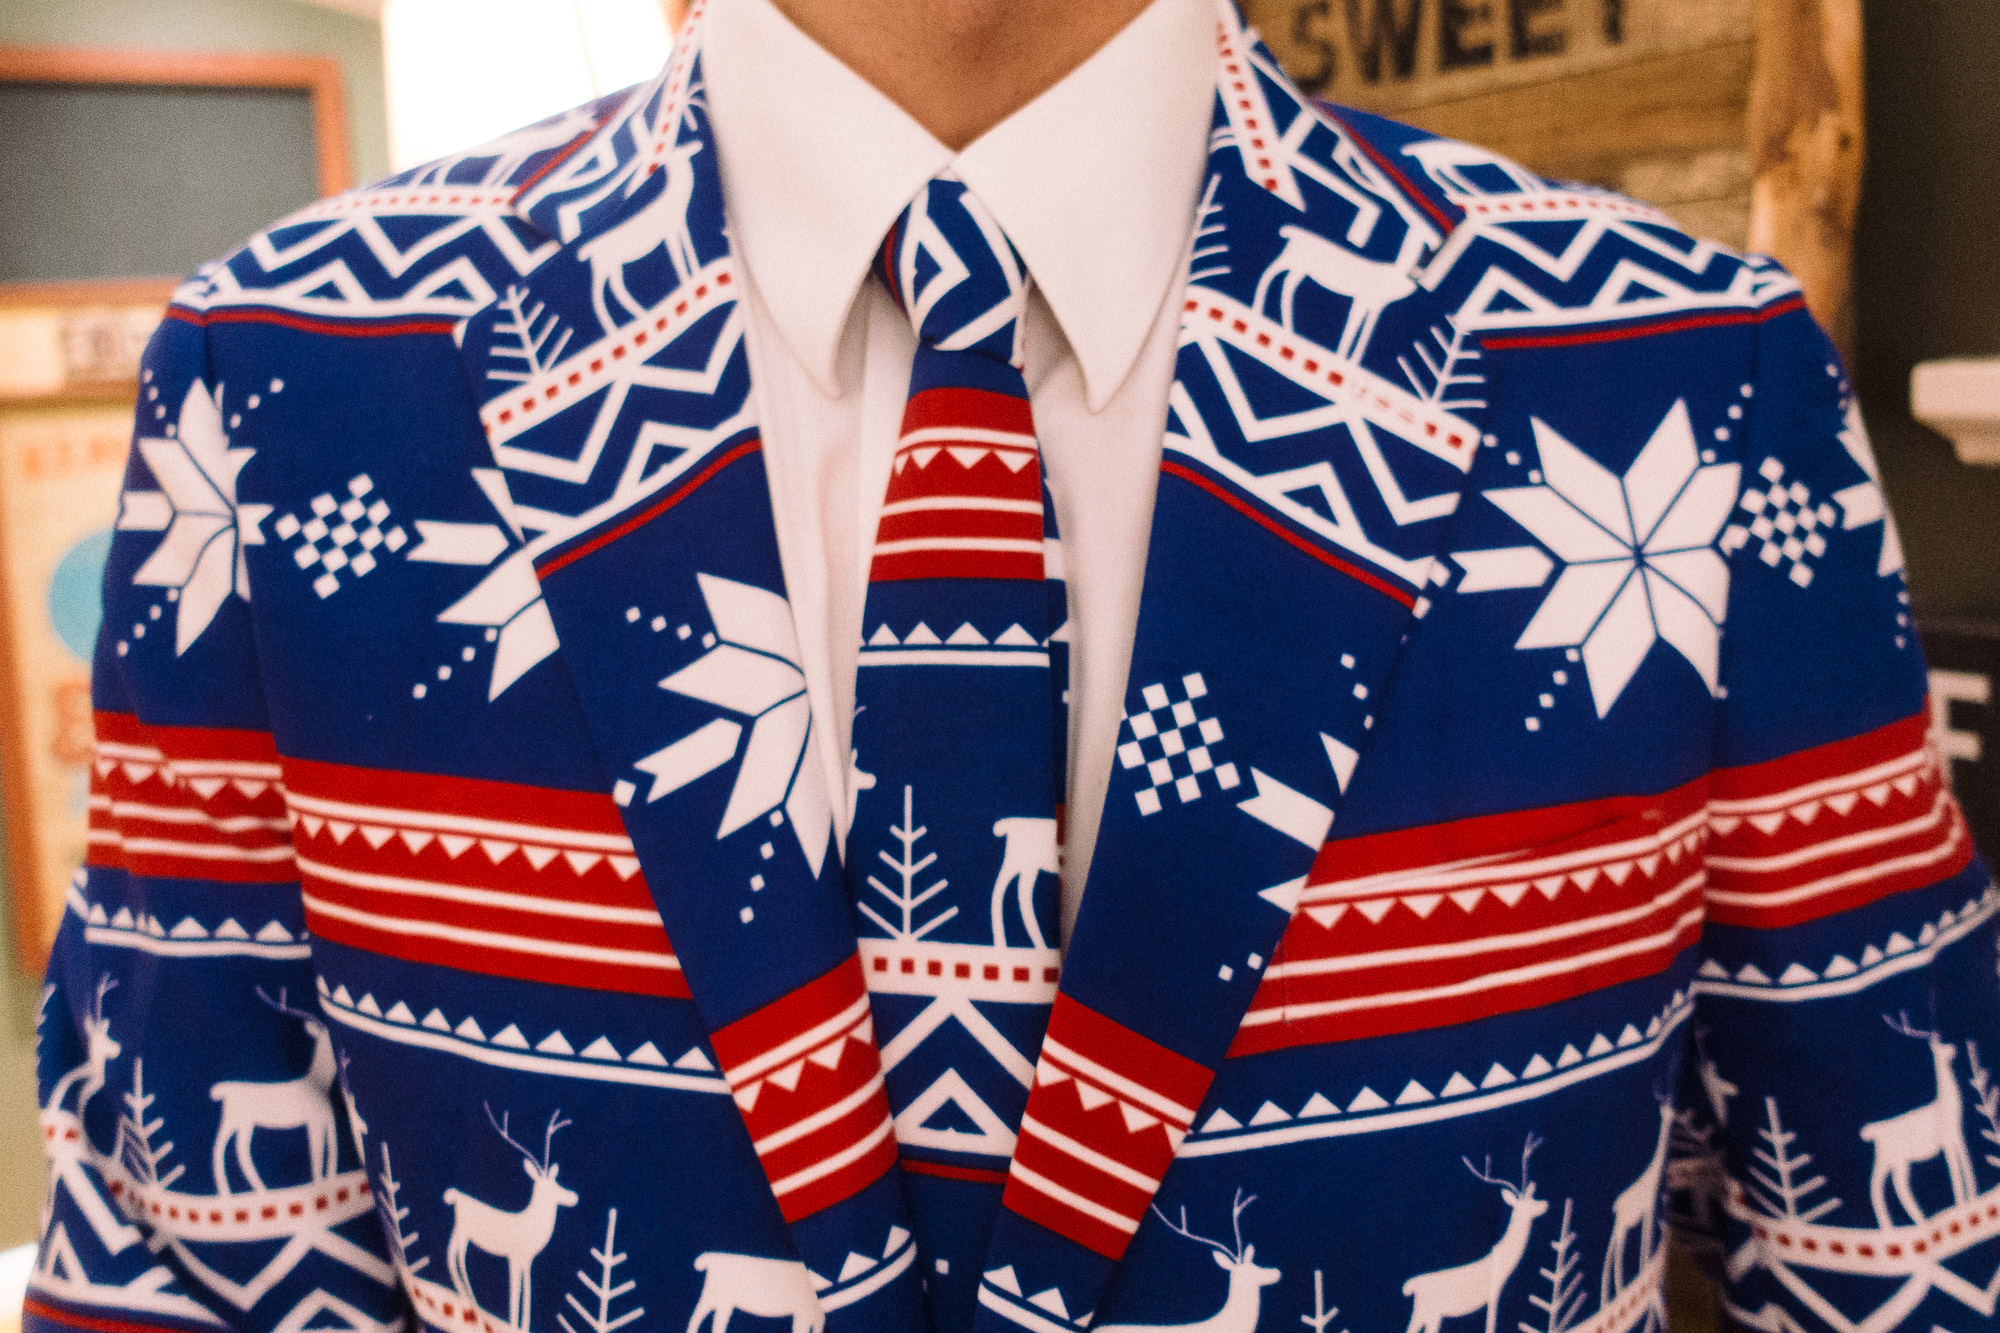 A suit with snowflakes and stripes pattern